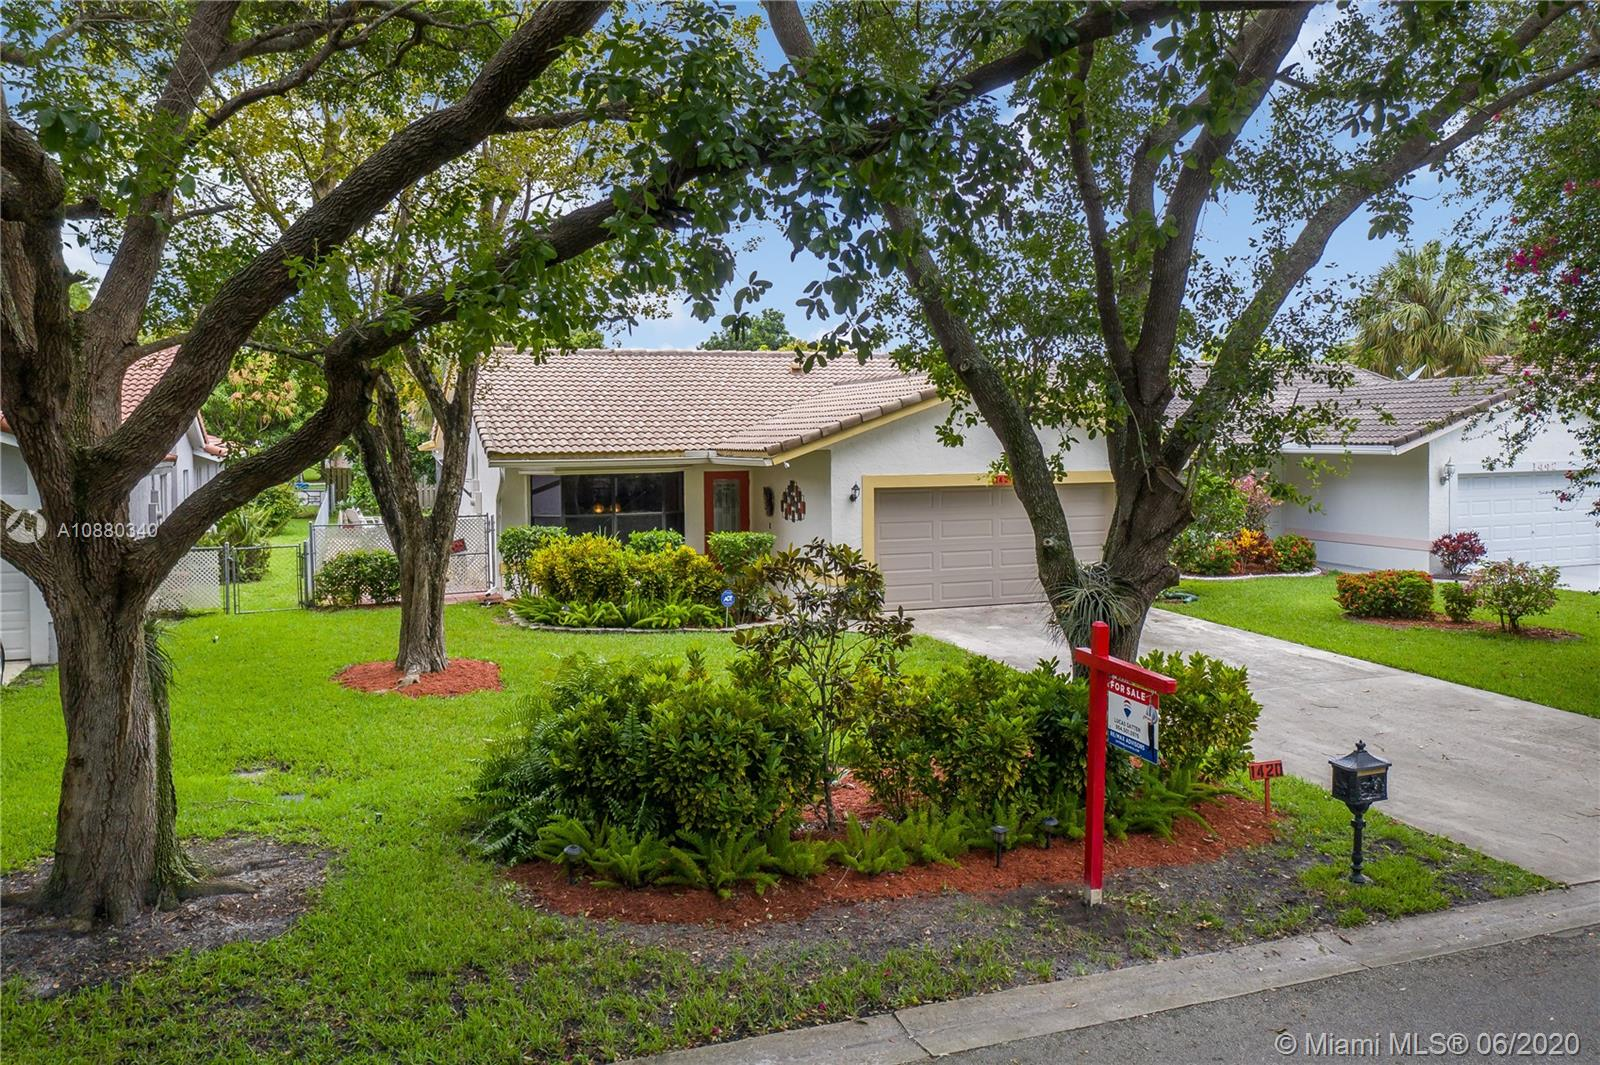 """Hurry to this Gorgeous Upd. 4 Bdrm 2 Bath 2 Car Garage Beauty Nestled on a Oak Tree Lined Street in the Best Loc. of Central C.S. 1 Block from The Walk w/ Rest./Shopping/Barnes & Noble/Kilwins/Starbucks/Trader Joes & much more. Home Boasts an Open Triple Split Floor Plan, w/ Vaulted Knockdown Textured Ceilings, Screened in Patio & Huge Fenced yard w/ Champagne Mango, Avocado & Green Apple Trees. Int. feat. incl. a remod. Kitchen w/ 42"""" Maple Hardwood Cabinets/S.S. Appl./Granite Counters/Island/Under counter lighting/soft close dovetail drawers & in cabinet recycle bins. Master Suite also has vaulted ceilings & remod. bath w/ double sinks & Porcelain tile Roman shower. Working Spa on Patio. New Water Heater & A/C. New Paint Inside/Out. 8 Yr. New Roof & Parking for over 7 cars. No HOA Hurry!"""